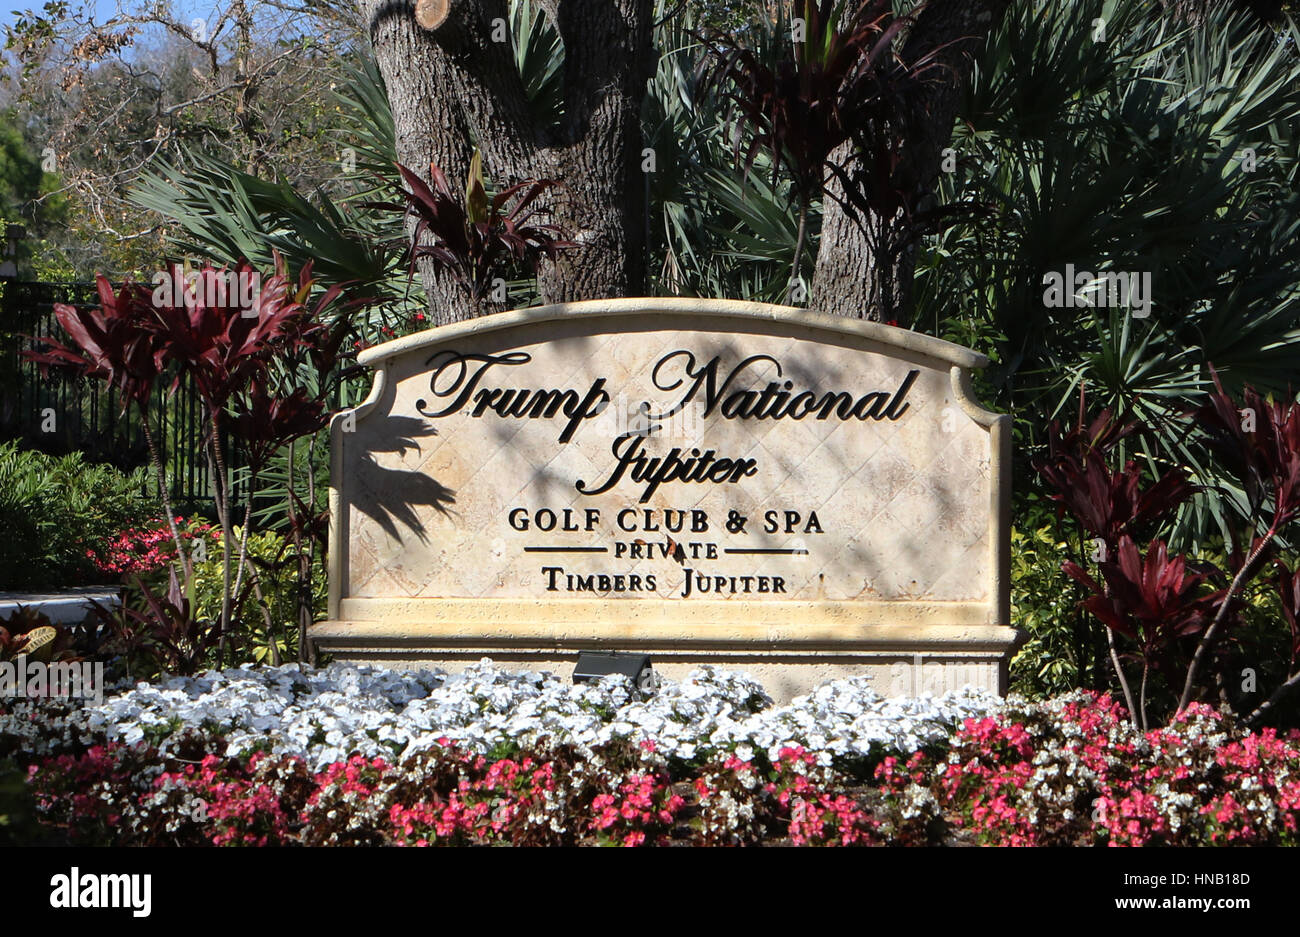 trump national golf club and spa in jupiter the club is 35 minute